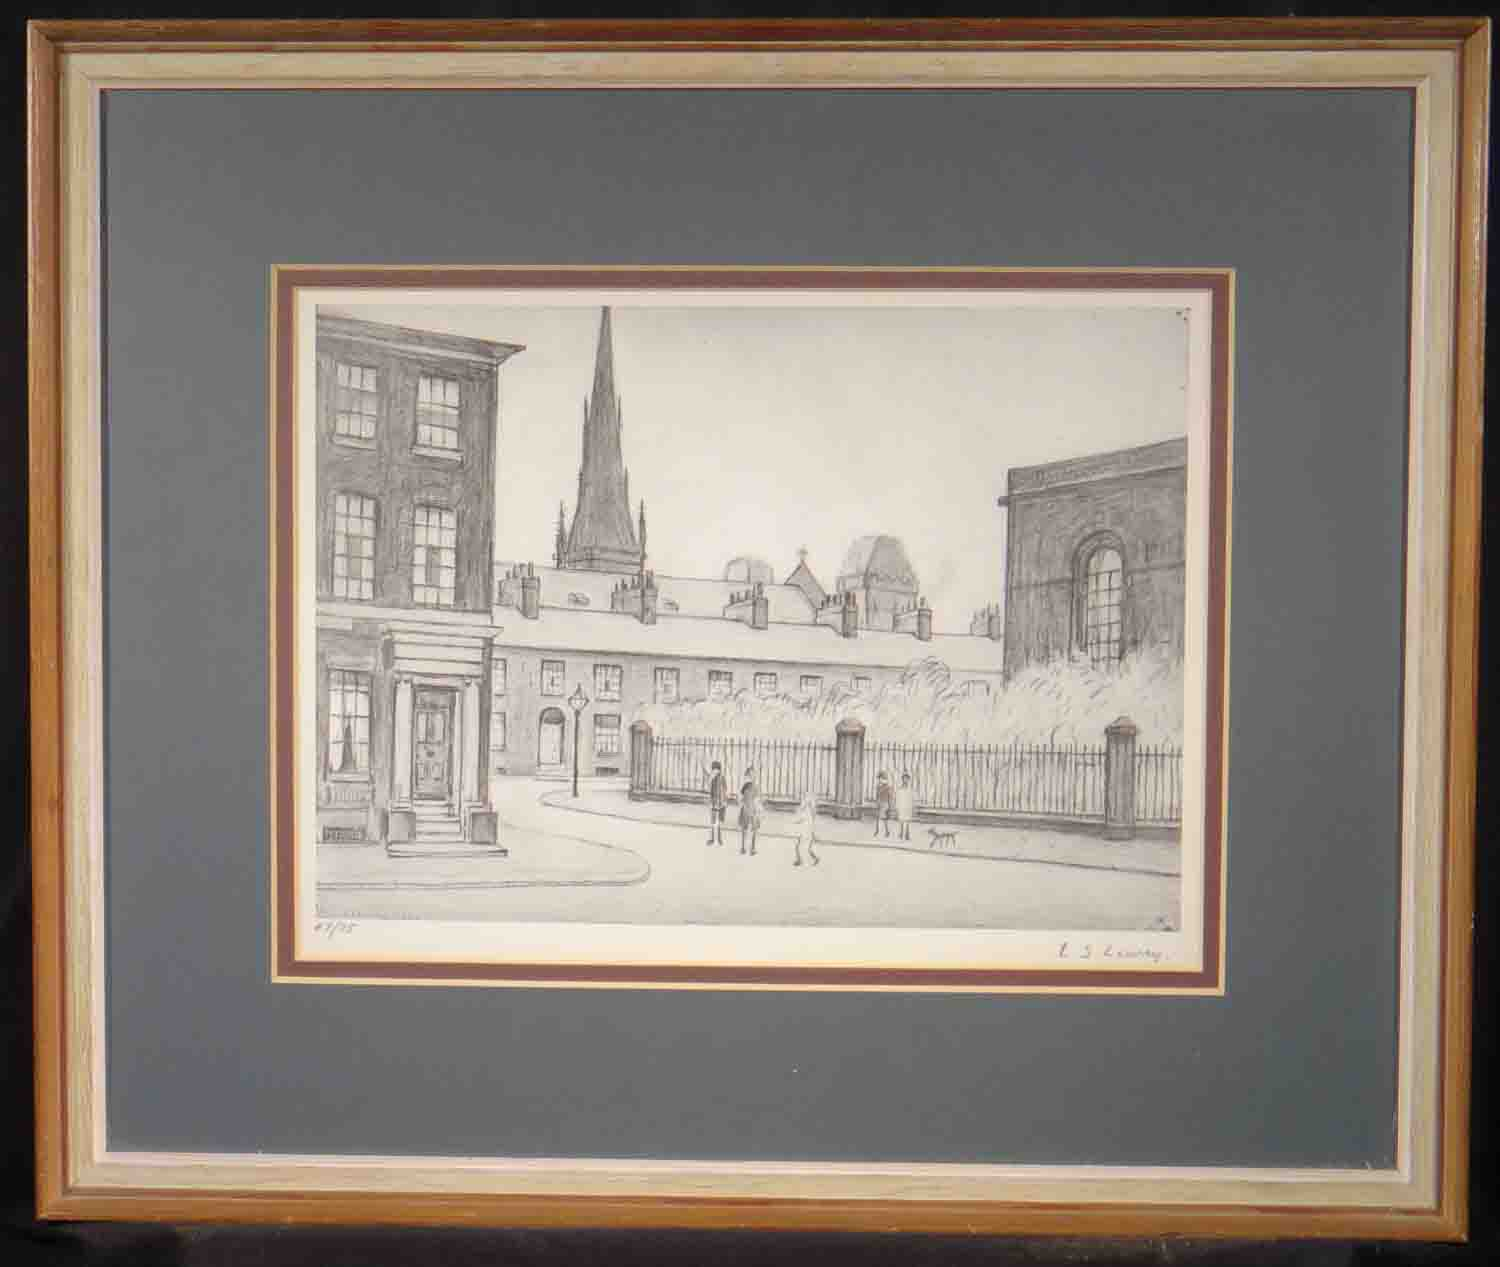 lowry, St. Philip's Church, Salford, signed print lslowry